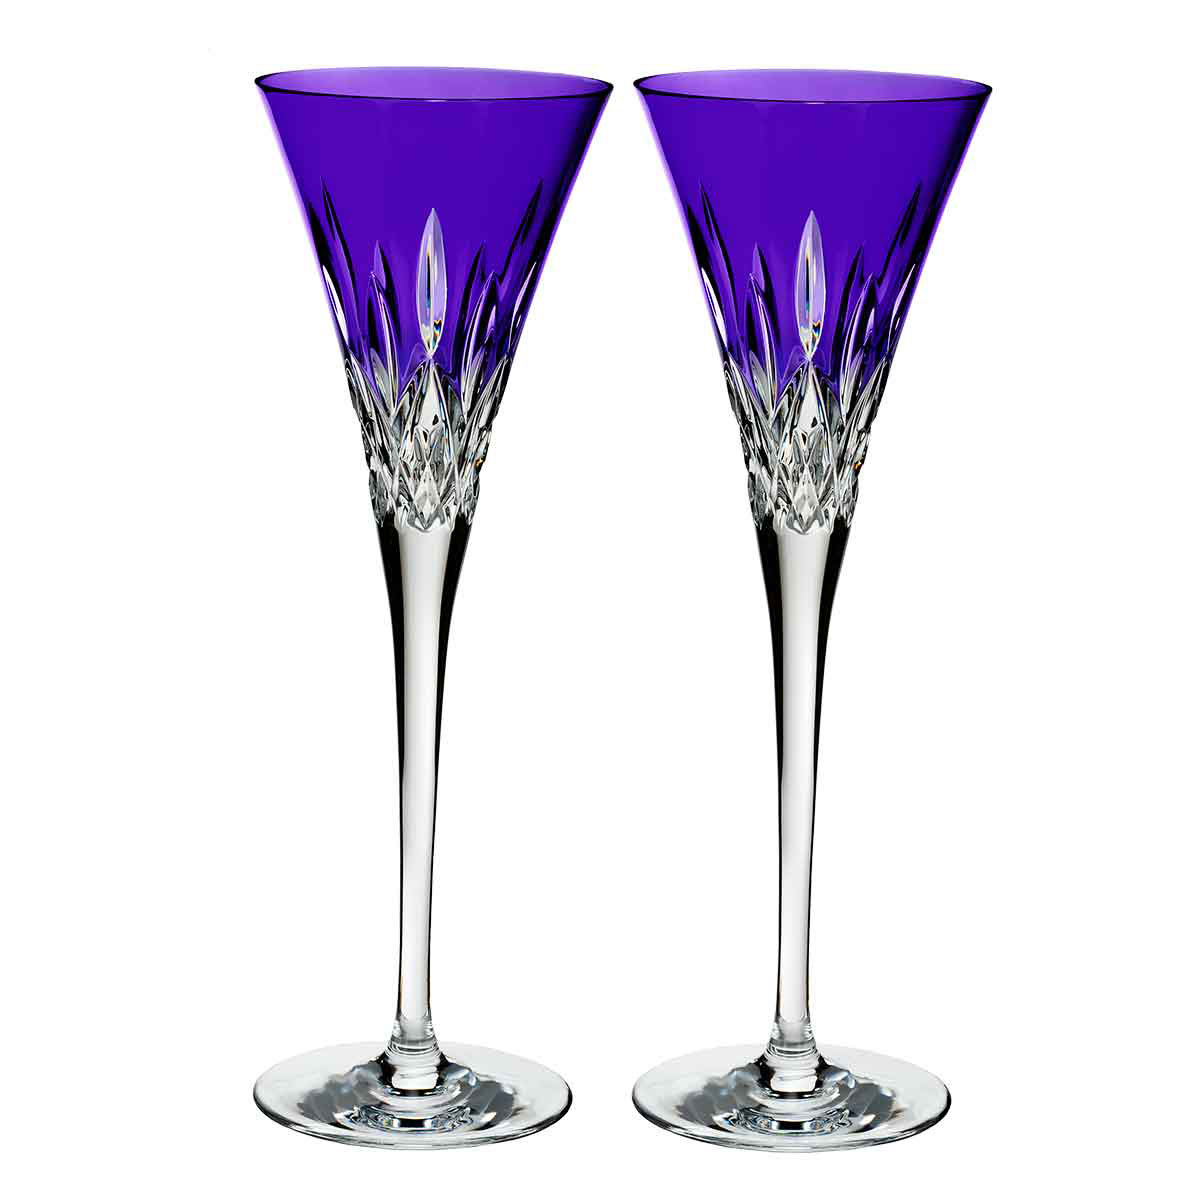 Waterford Crystal, Lismore Pops Purple Toasting Crystal Flutes, Pair